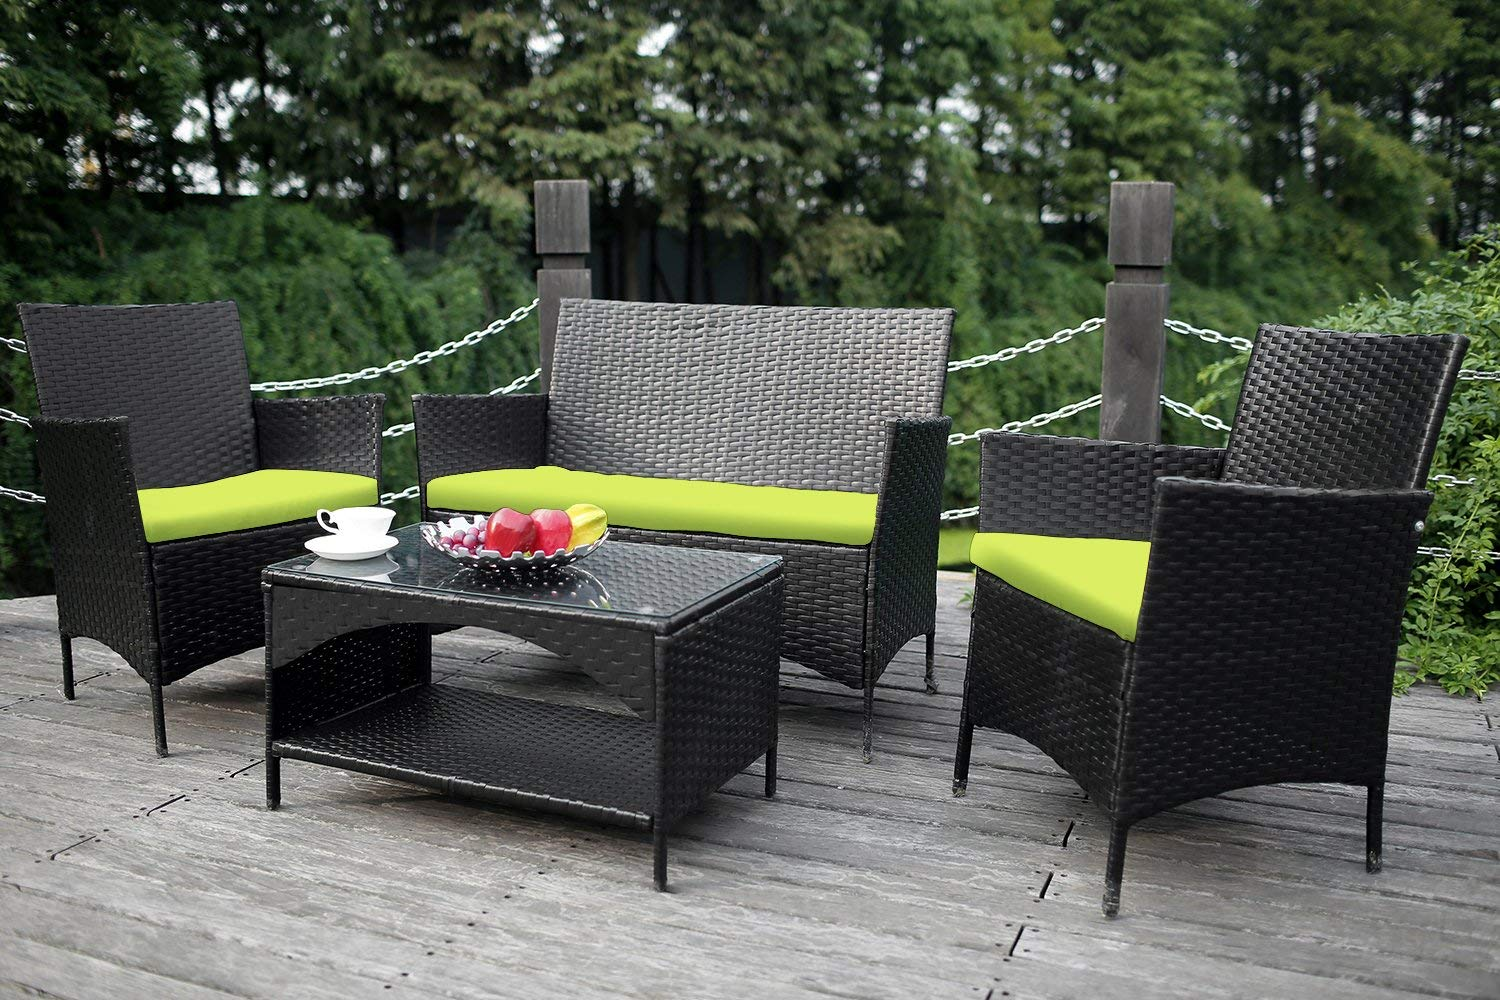 lawn furniture amazon.com: merax 4-piece outdoor pe rattan wicker sofa and chairs set GWJKAHT